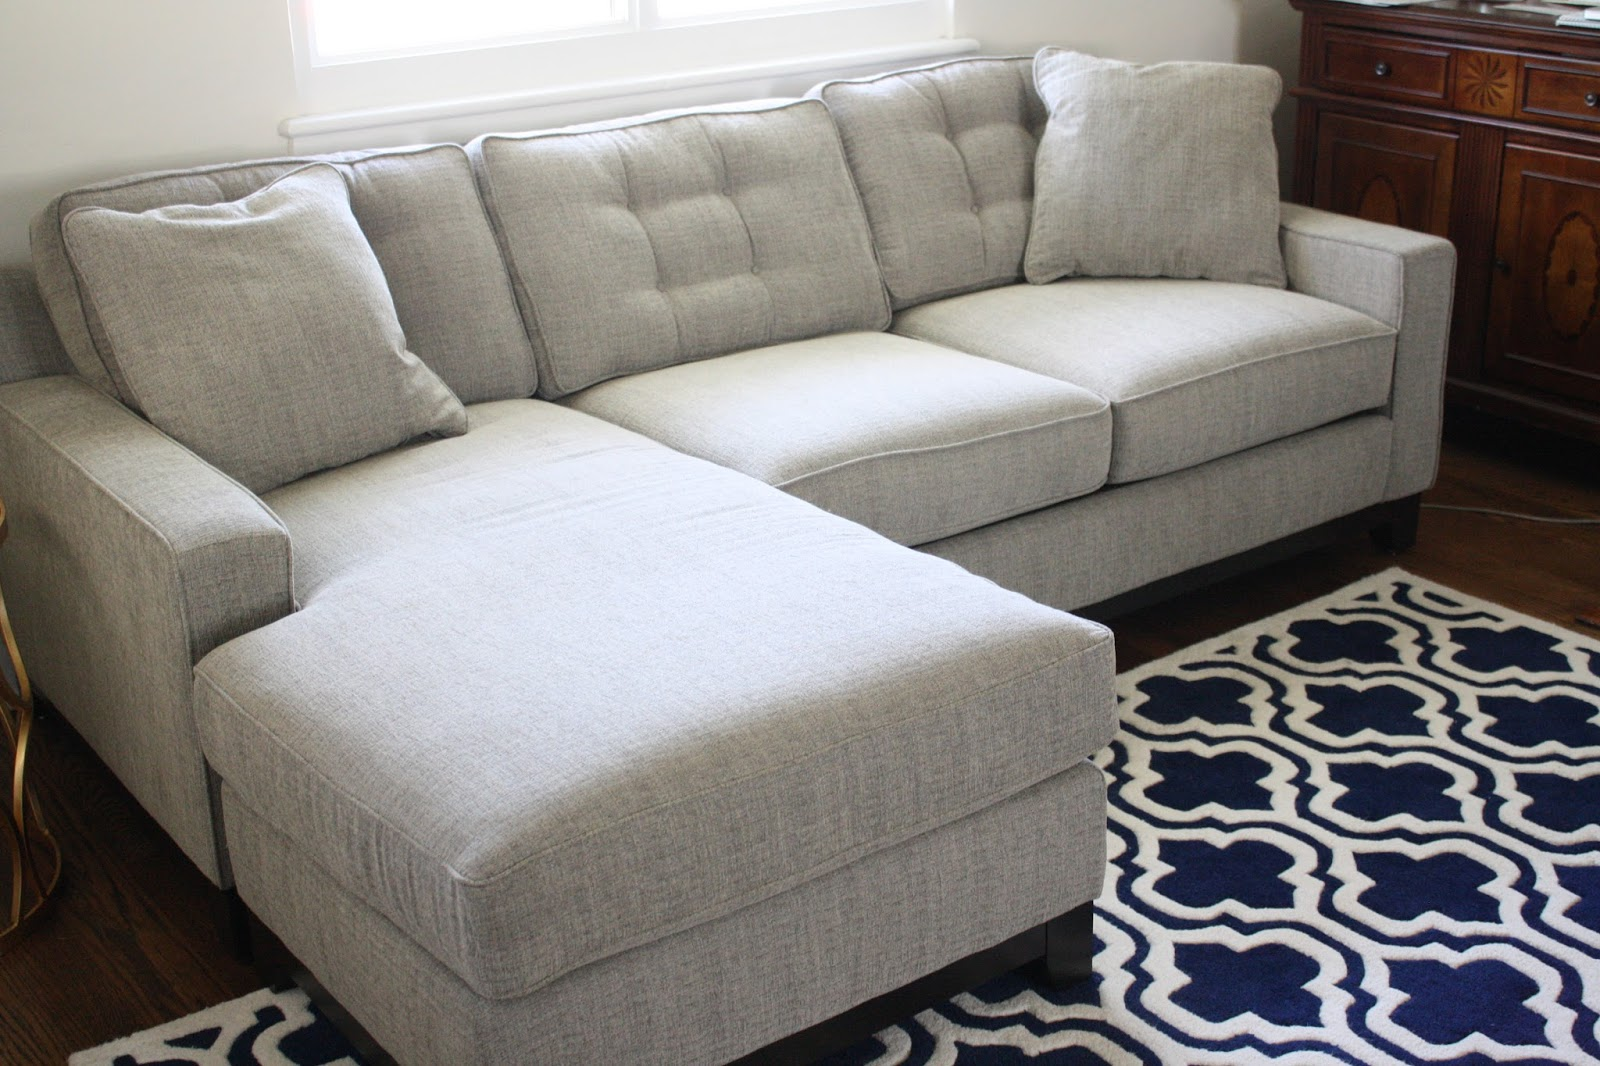 Aly S Bloggity Blog New Couch